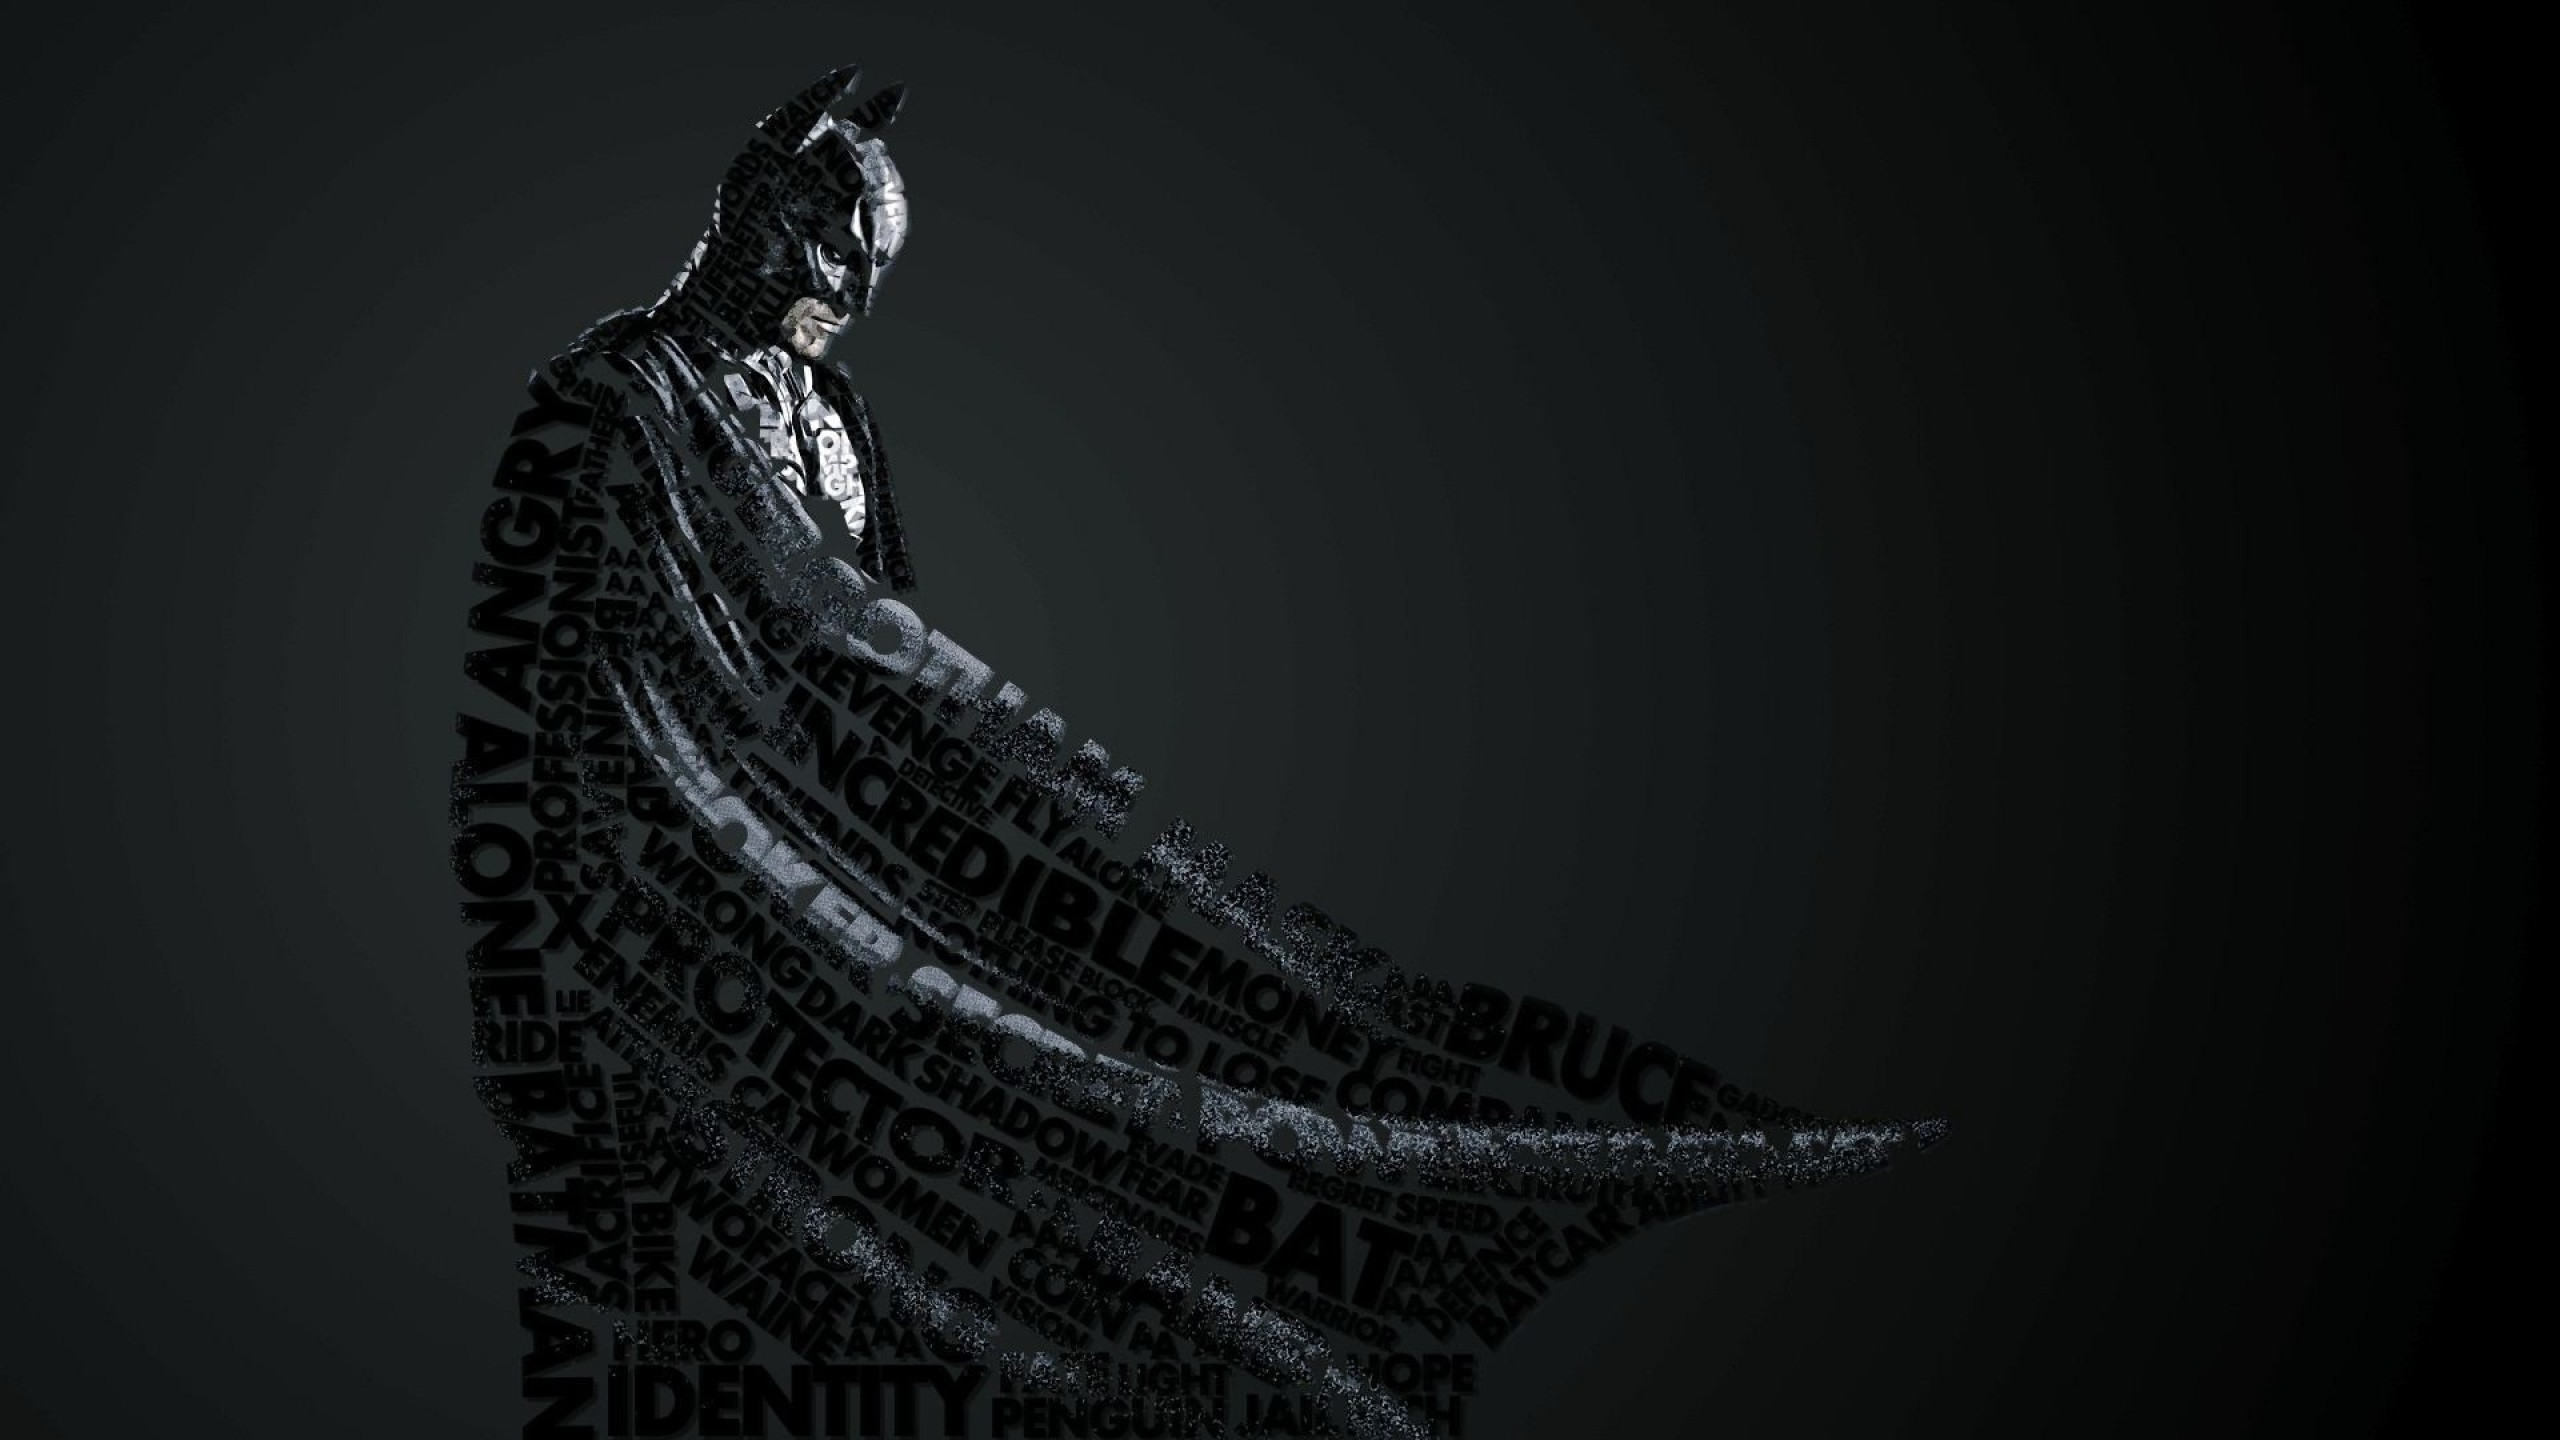 2560x1440 Preview wallpaper batman, style, lettering